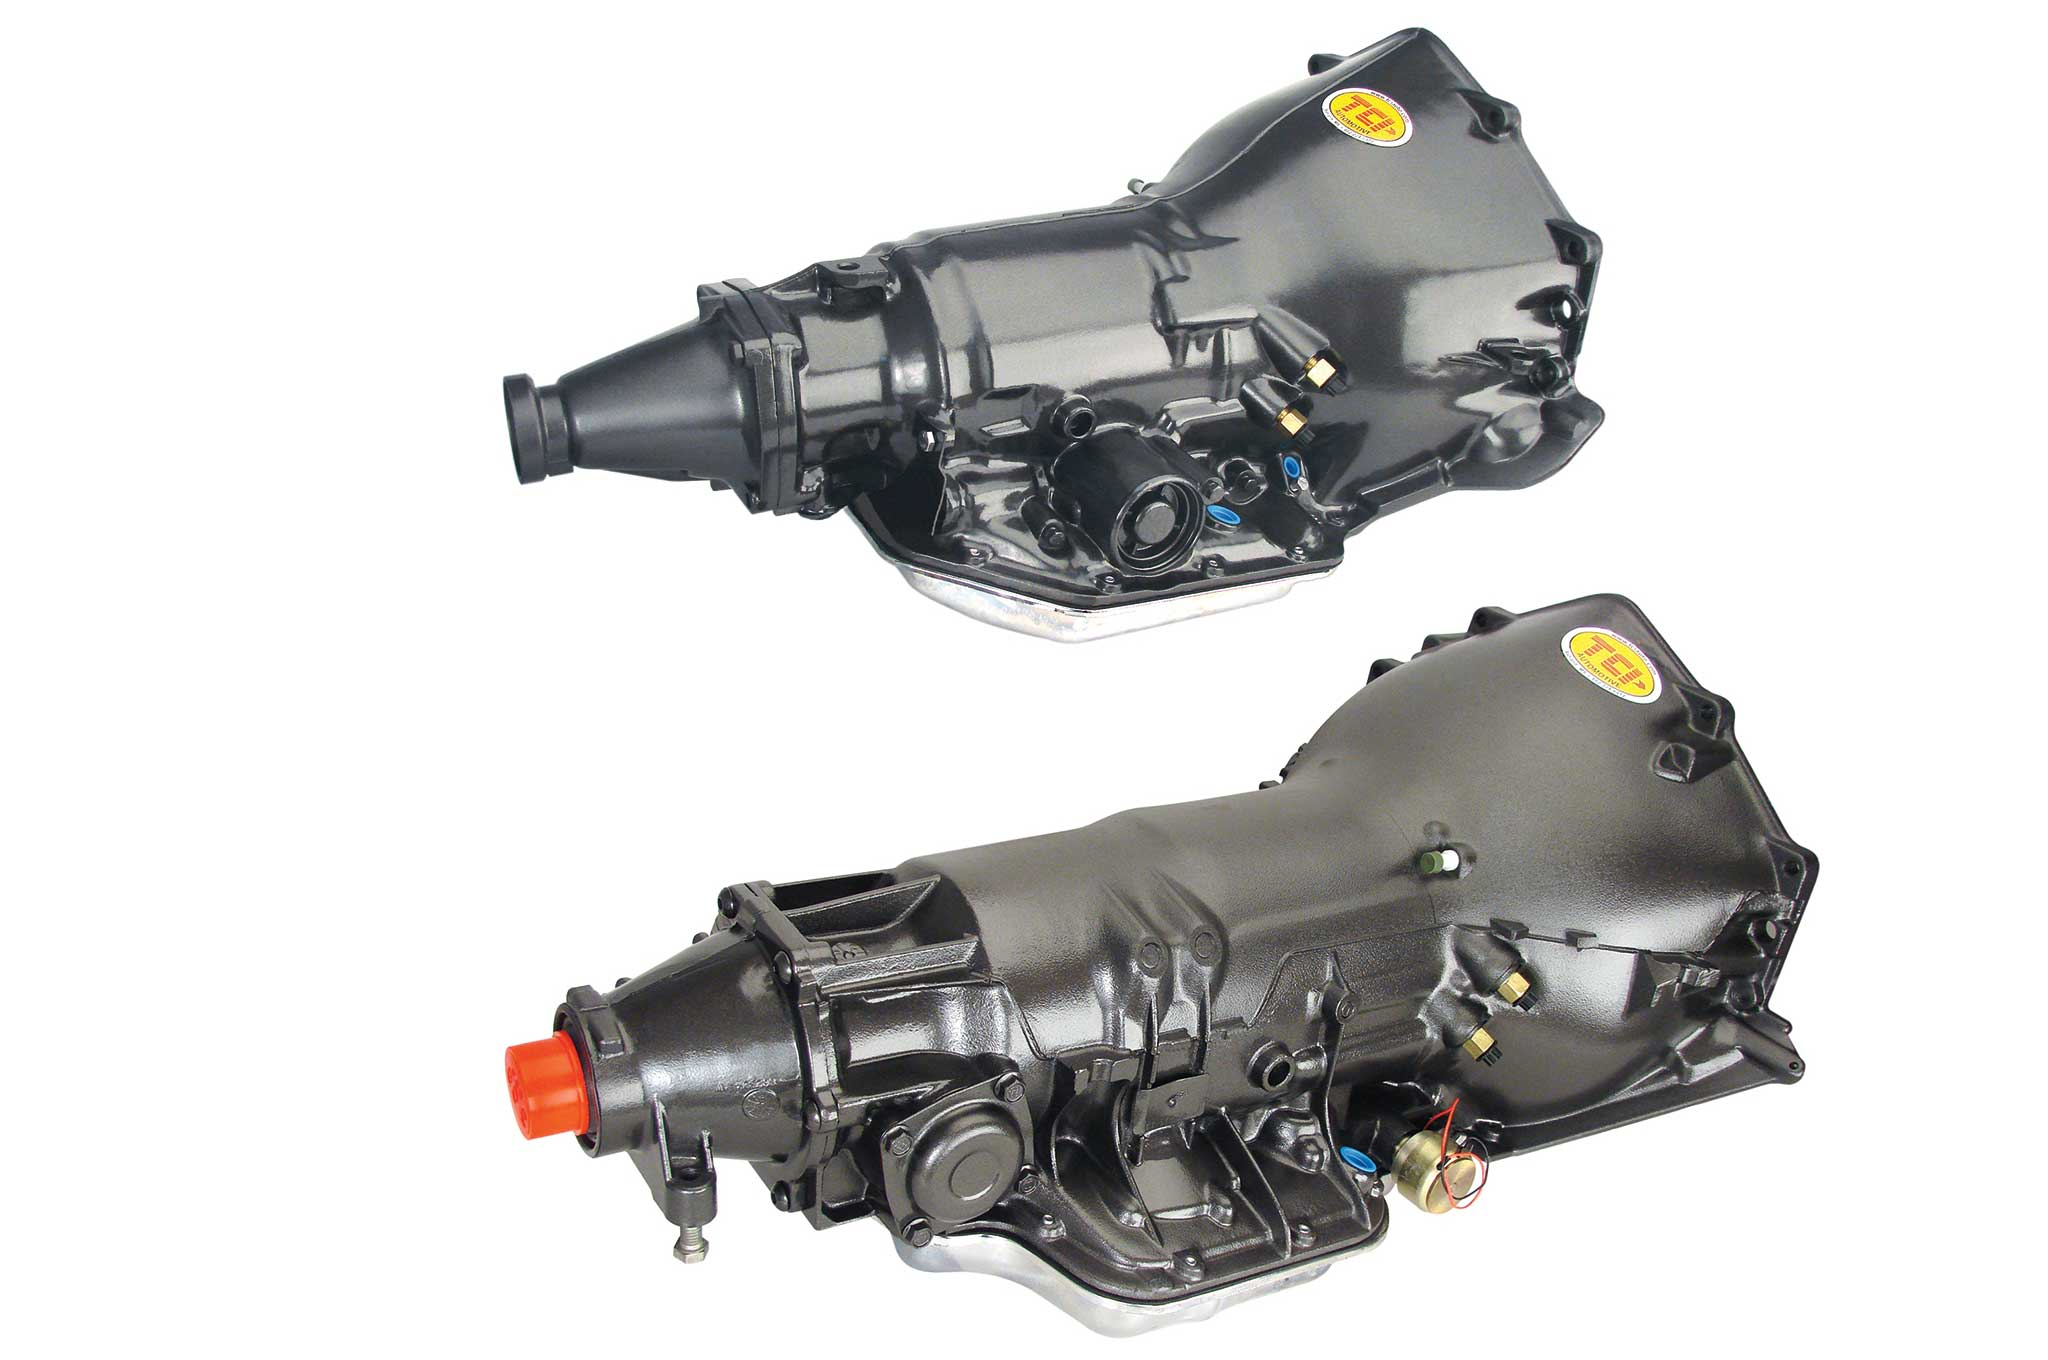 The Turbo 350 (top) and the Turbo 400 (bottom) are the quintessential GM automatic transmissions. Both are three-speeds, but the Turbo 400 is physically larger and designed more for the torque capacity of big-block engines.